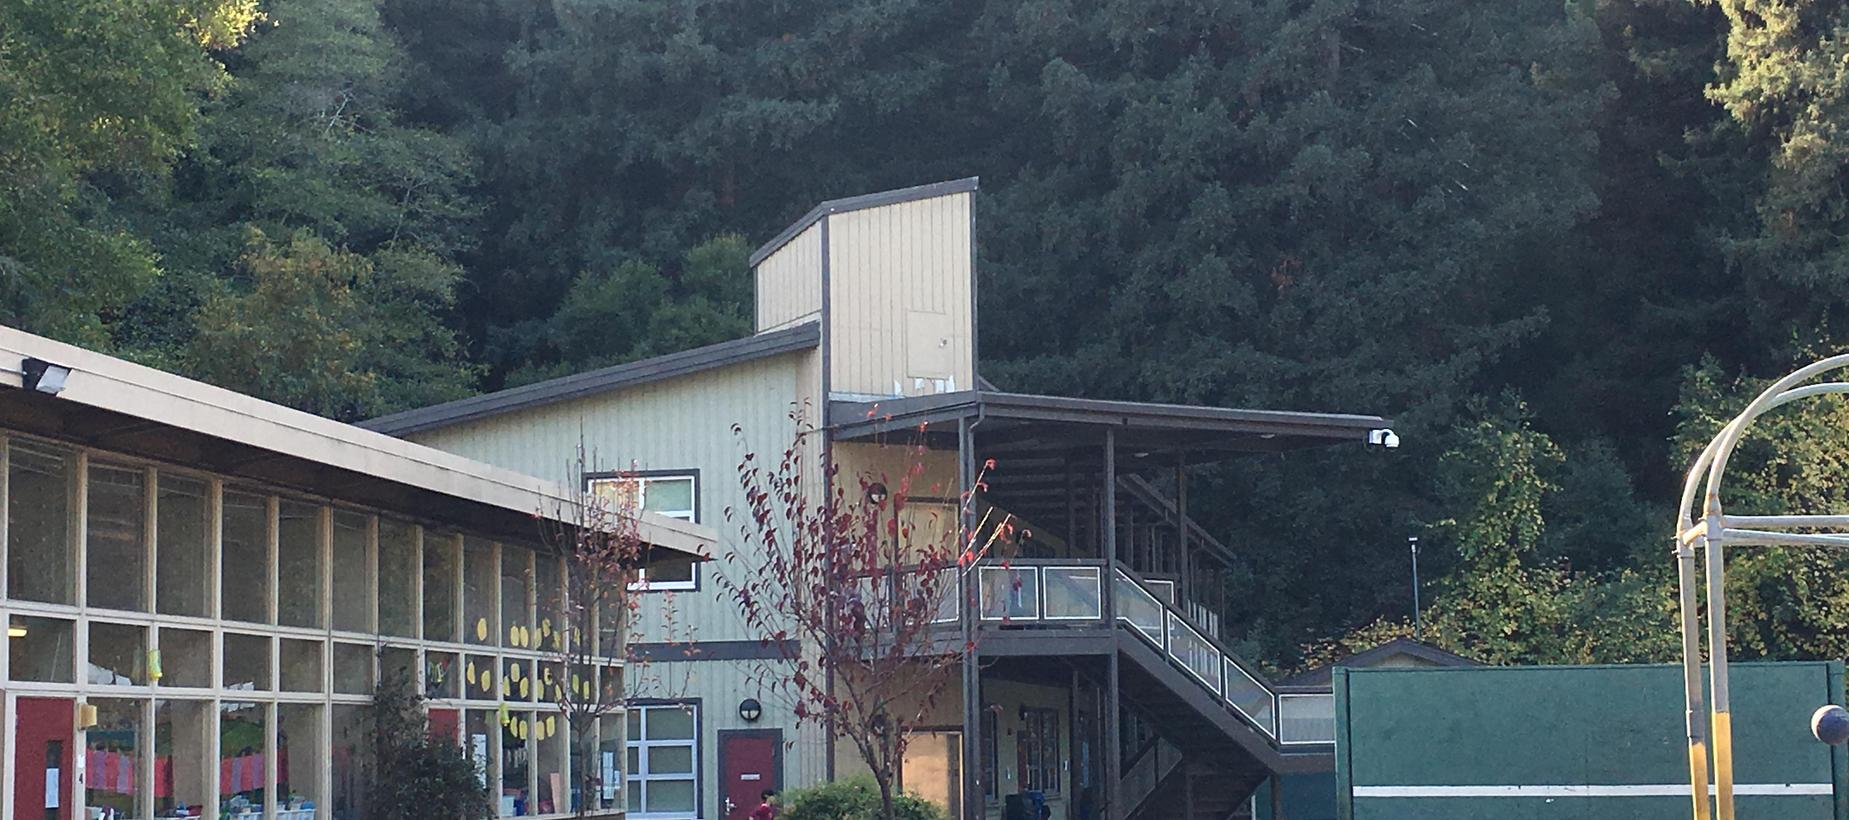 Photo of buildings at BCE.